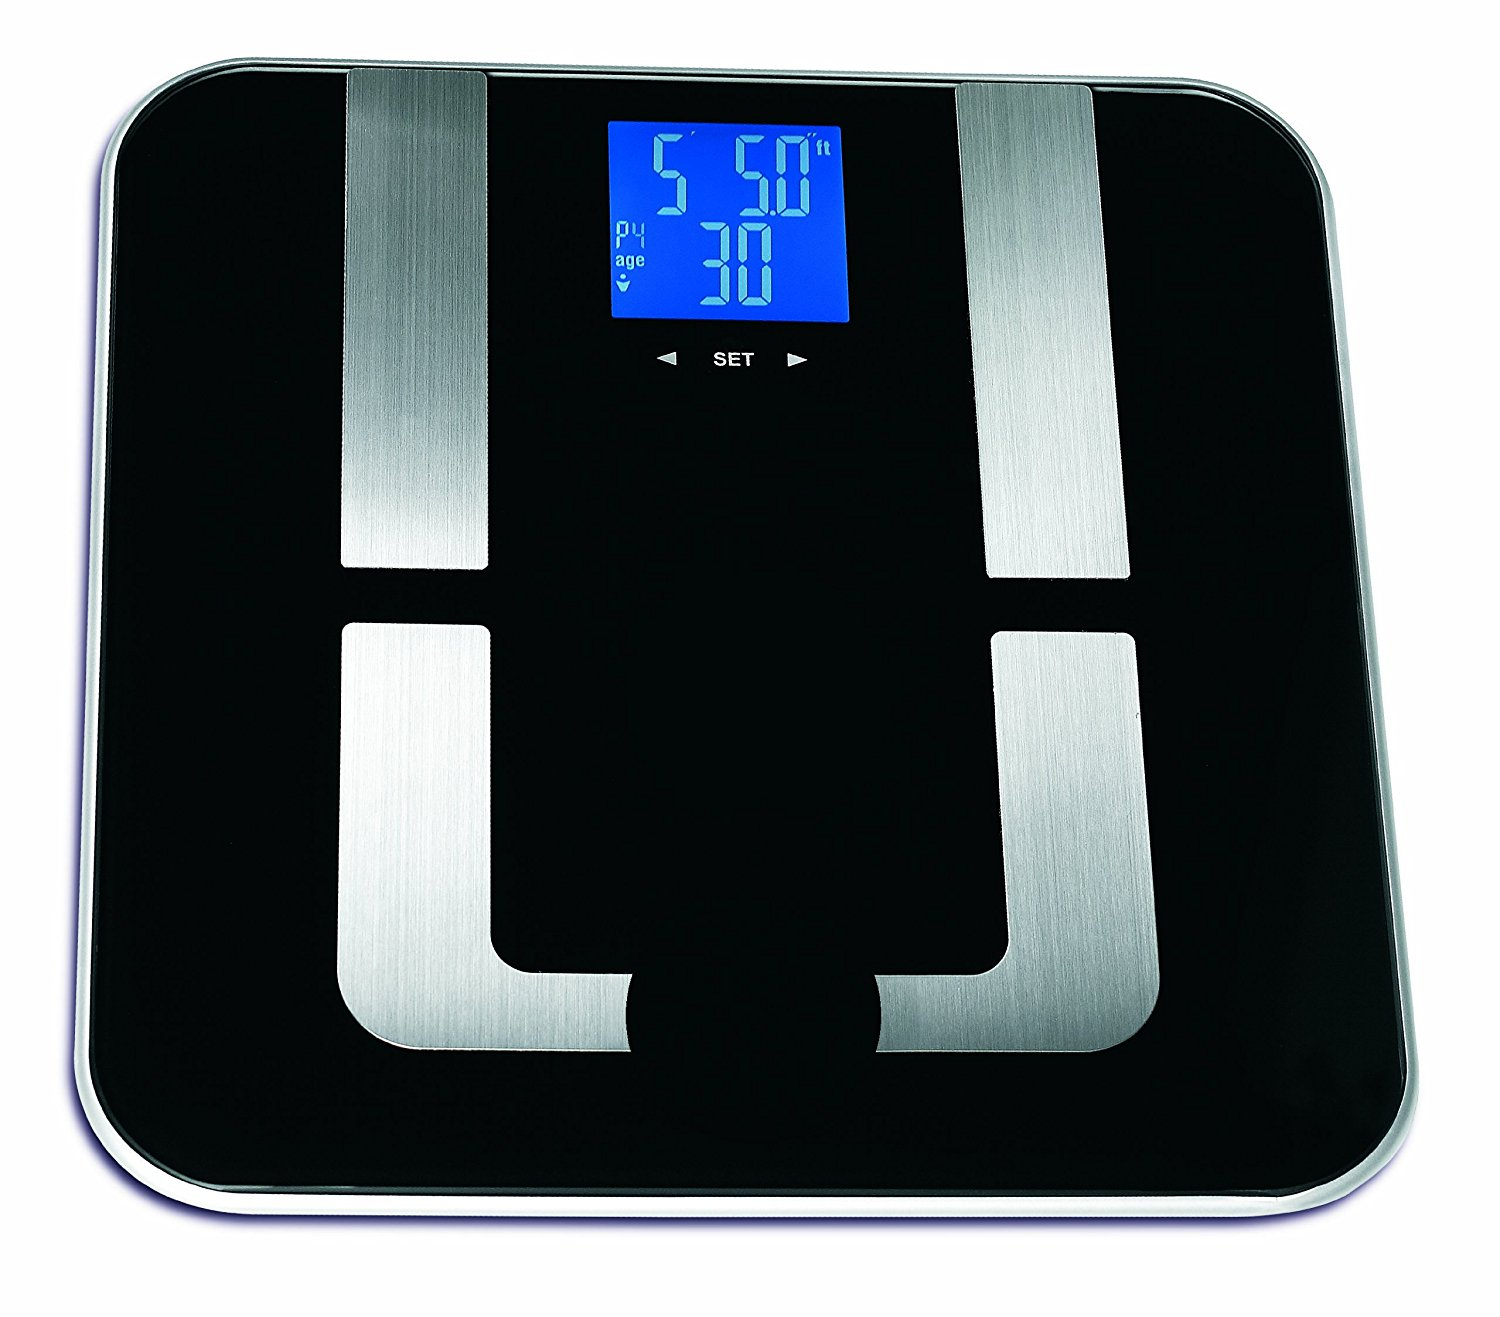 Bed bath and beyond bathroom scales - Eatsmart Precision Digital Bathroom Scale Bed Bath And Beyond Scales For Weight Weight Scales